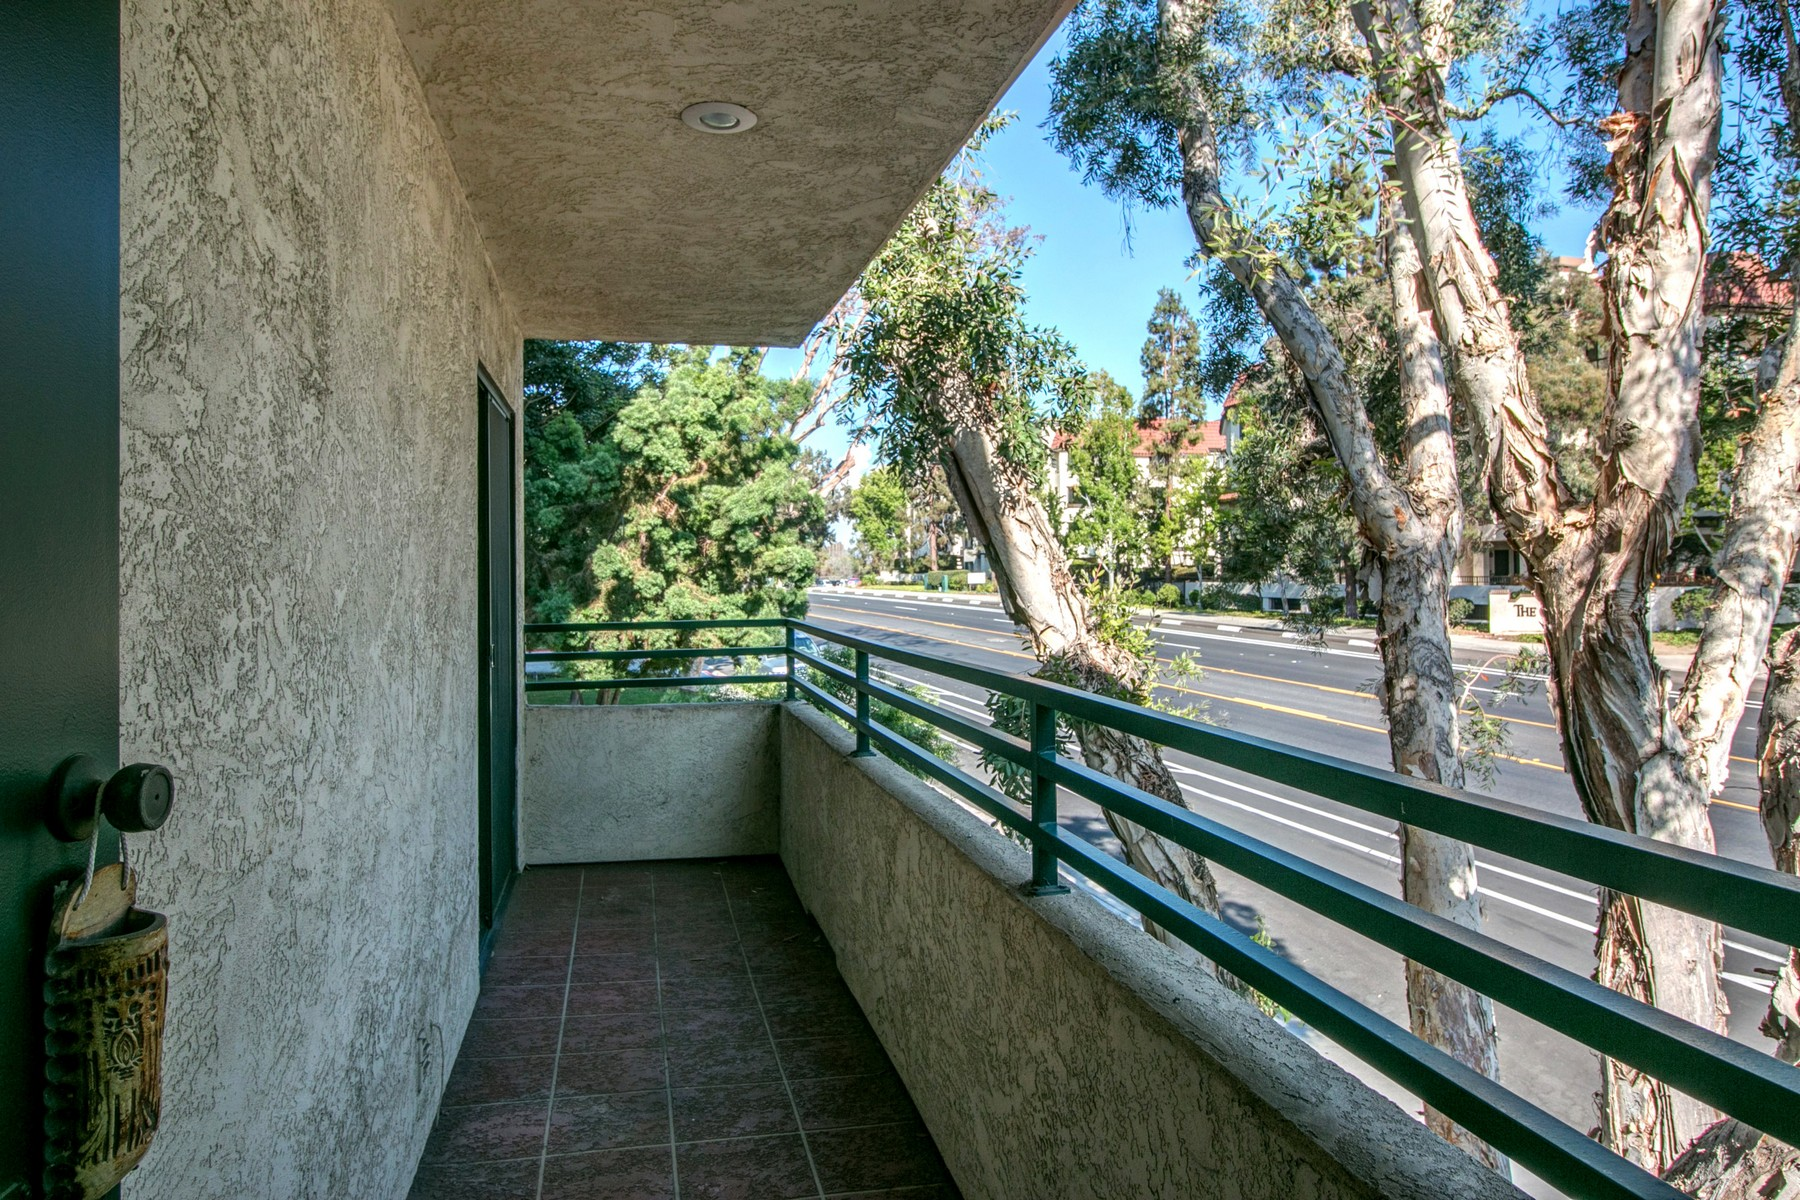 Additional photo for property listing at 1055 Donahue Street, Suite 7  San Diego, California 92110 Estados Unidos